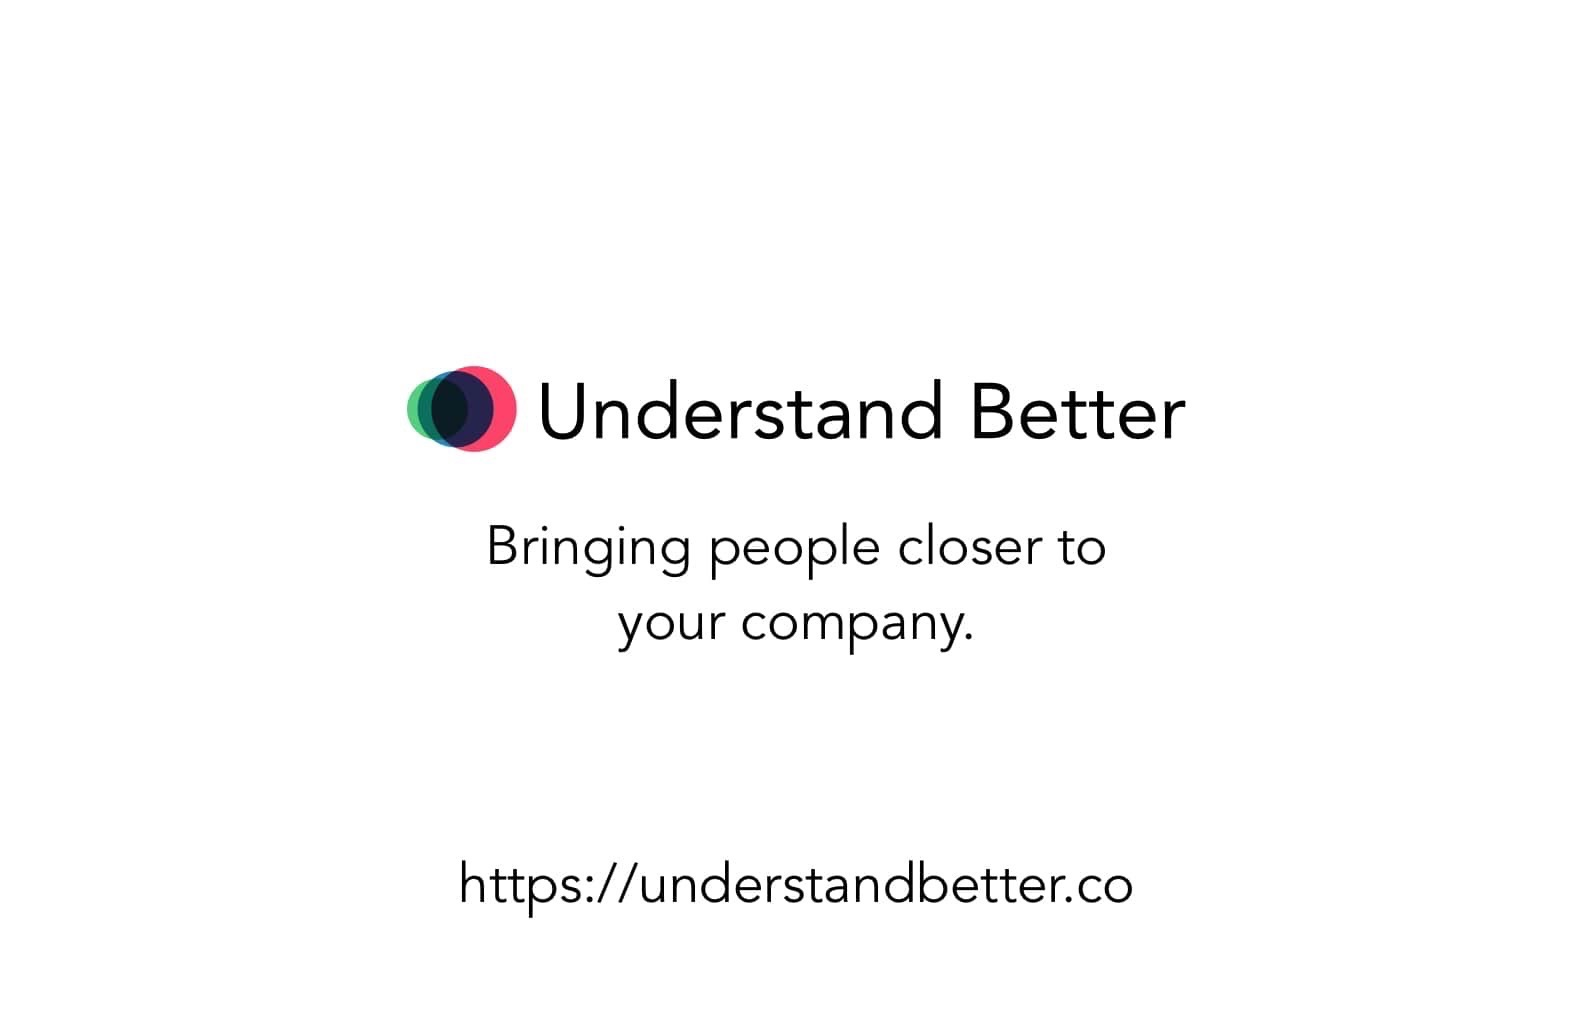 Introducing Understand Better!